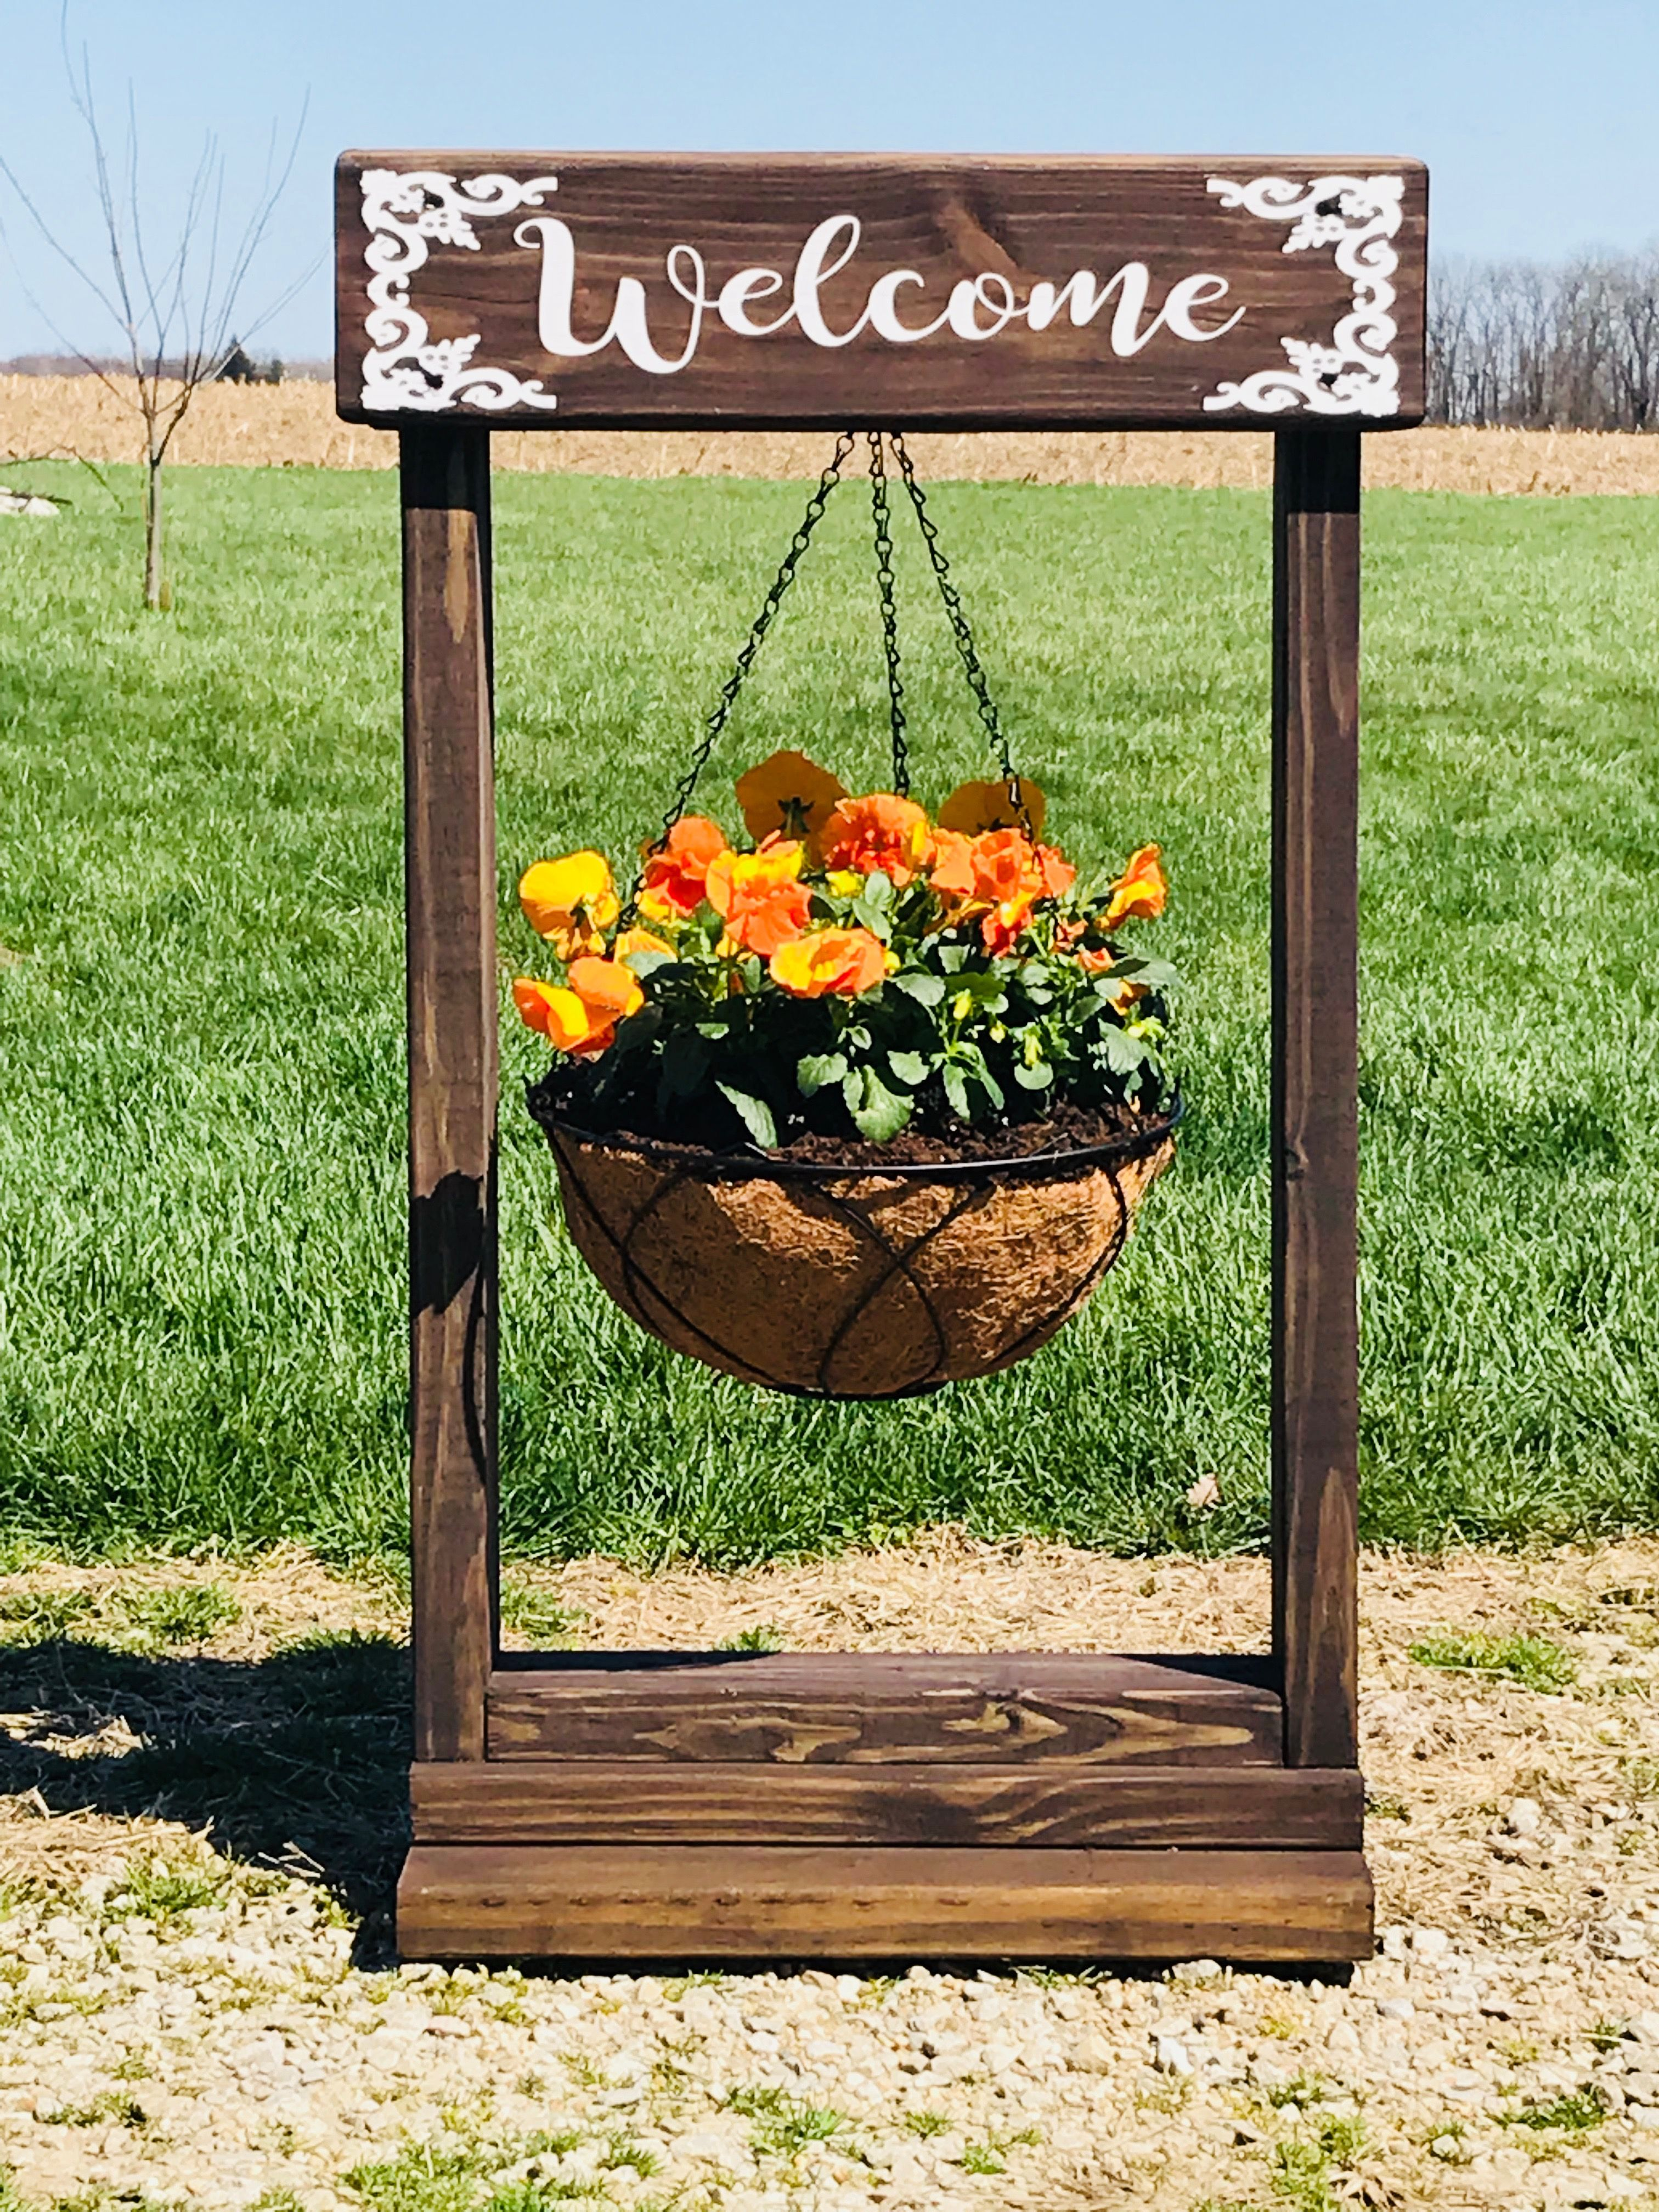 Hanging plant stand | Diy wood projects, Hanging plants ... on Hanging Plant Stand Ideas  id=91632